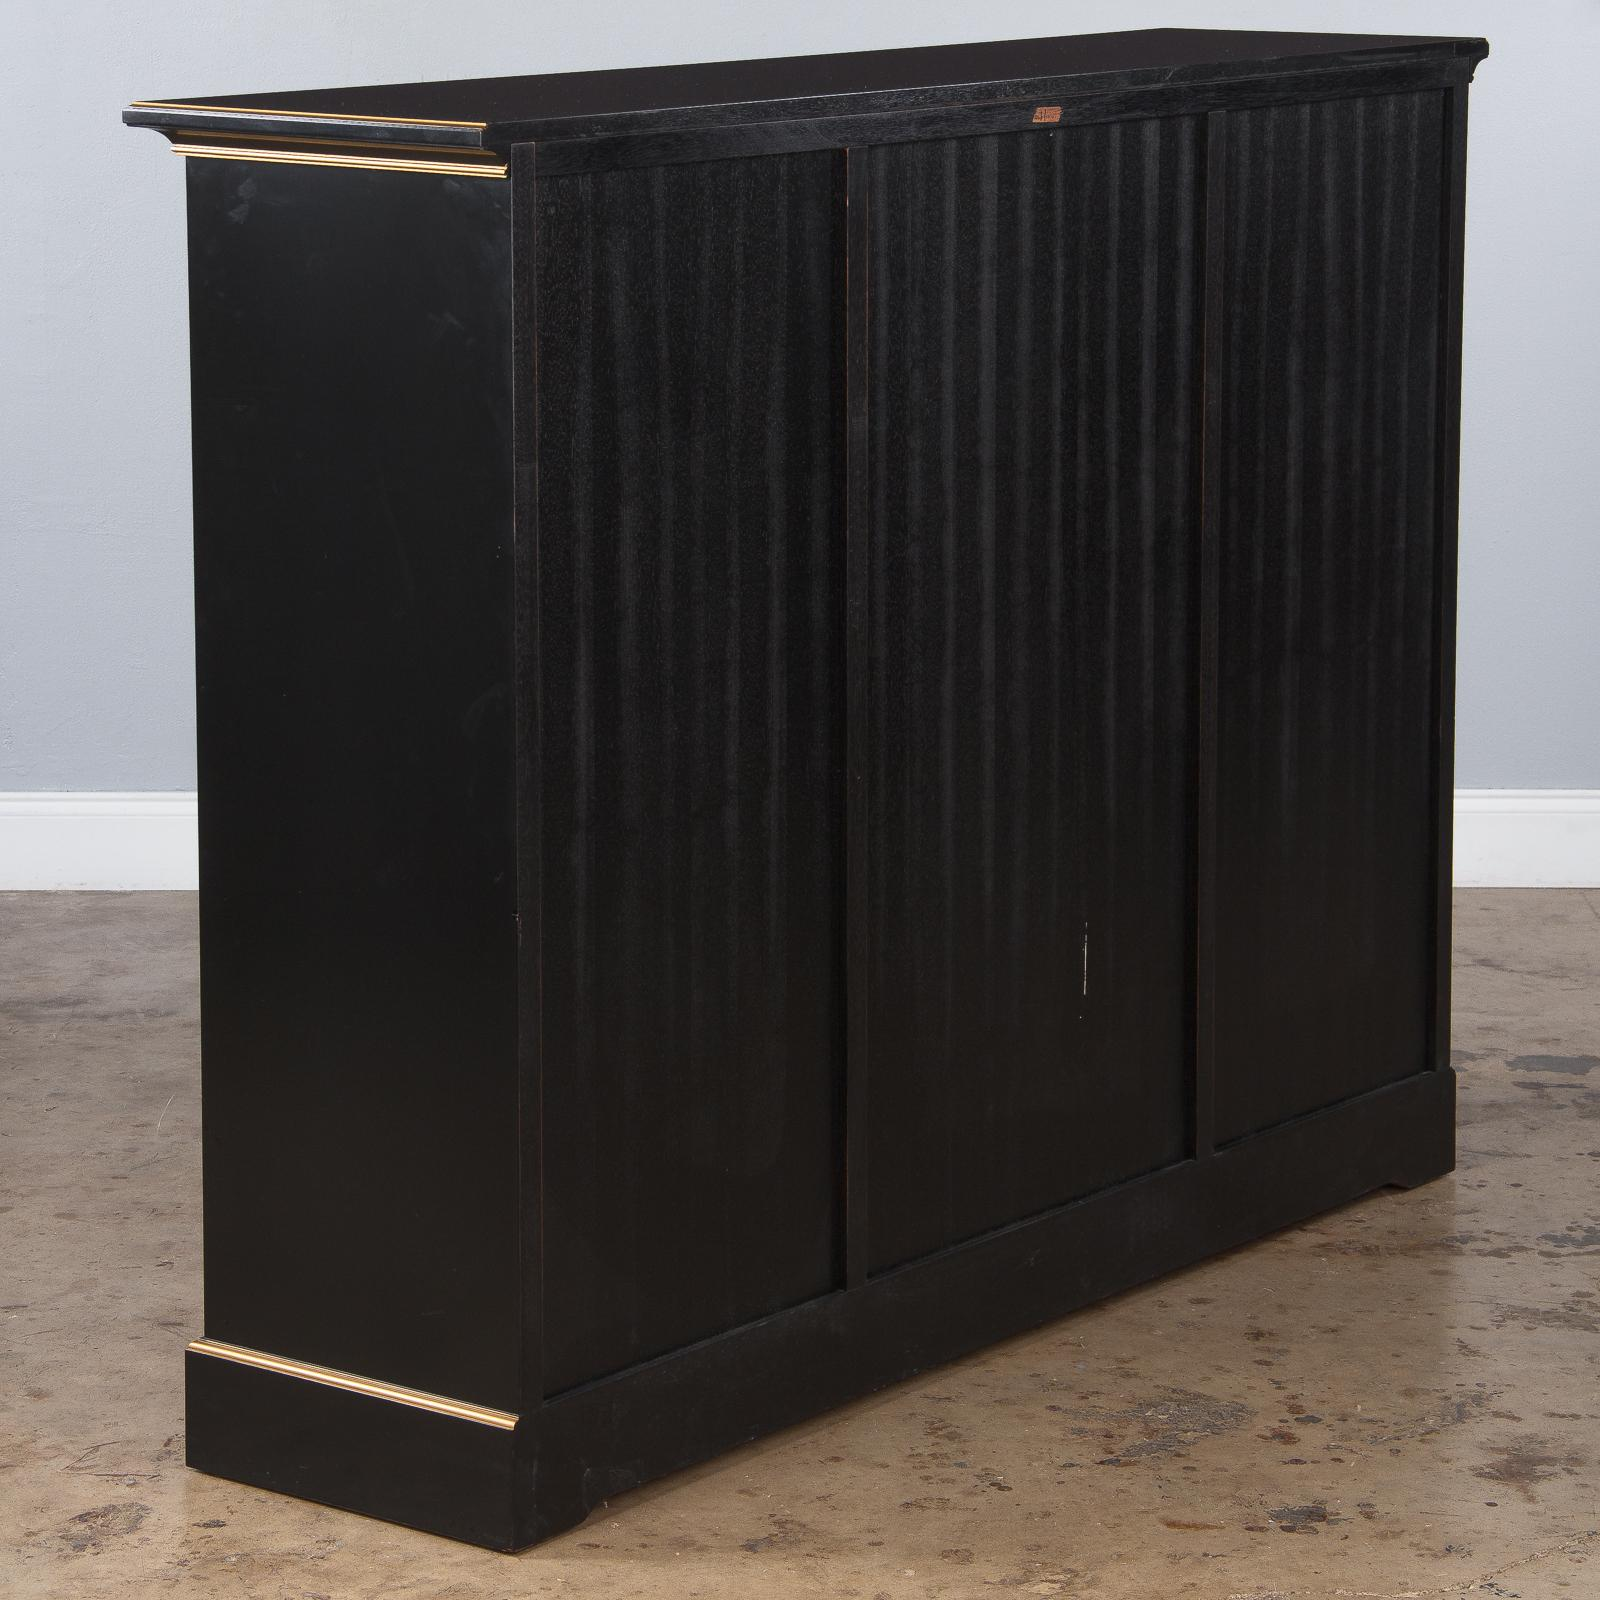 French Neoclassical Varnished Ebony Cabinet By Maurice Hirsch, 1950s